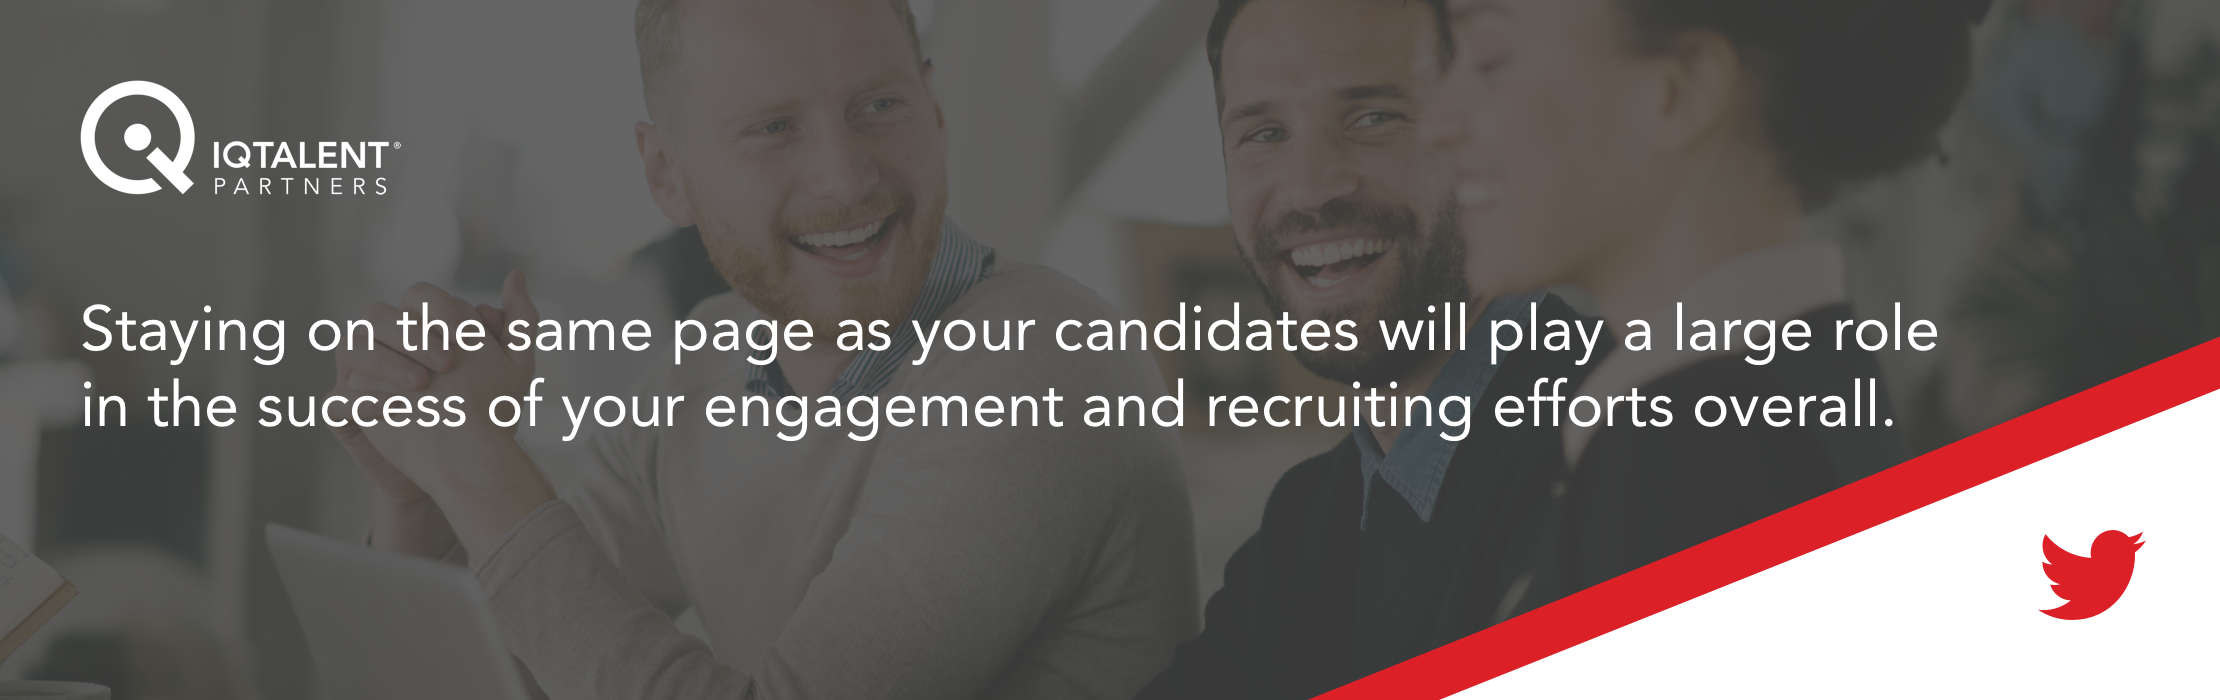 Staying on the same page as your candidates will play a large role in the success of your engagement and recruiting efforts overall.